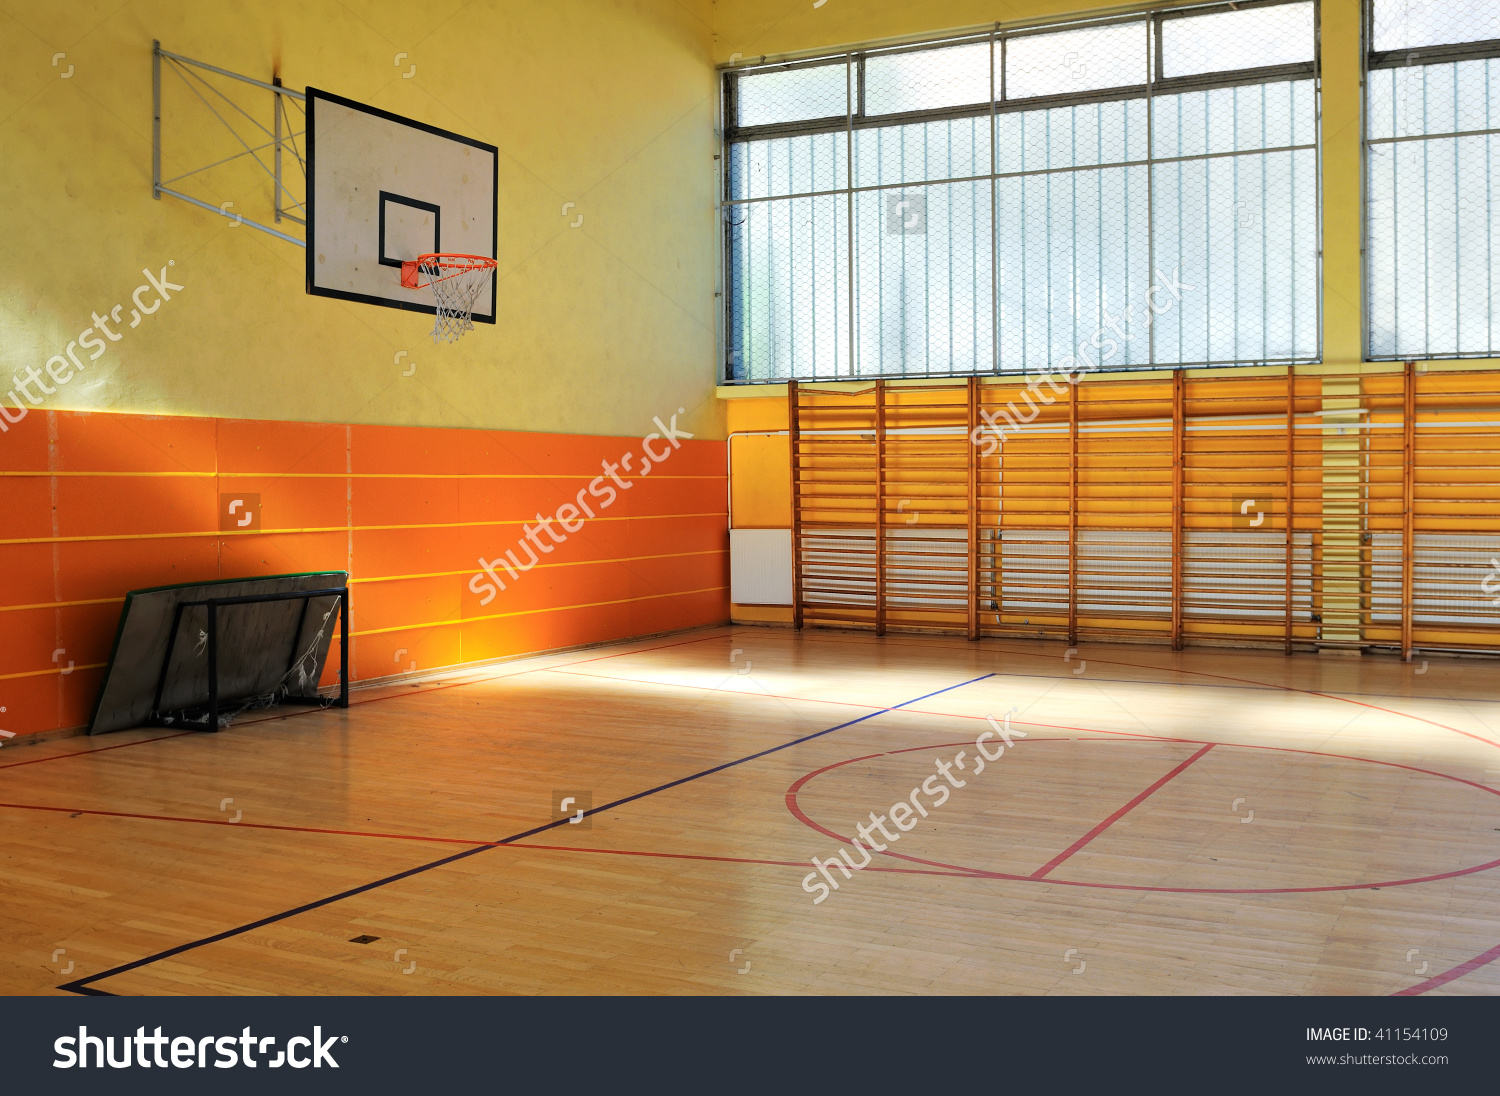 Elementary School Gym Pictures In Clipart.